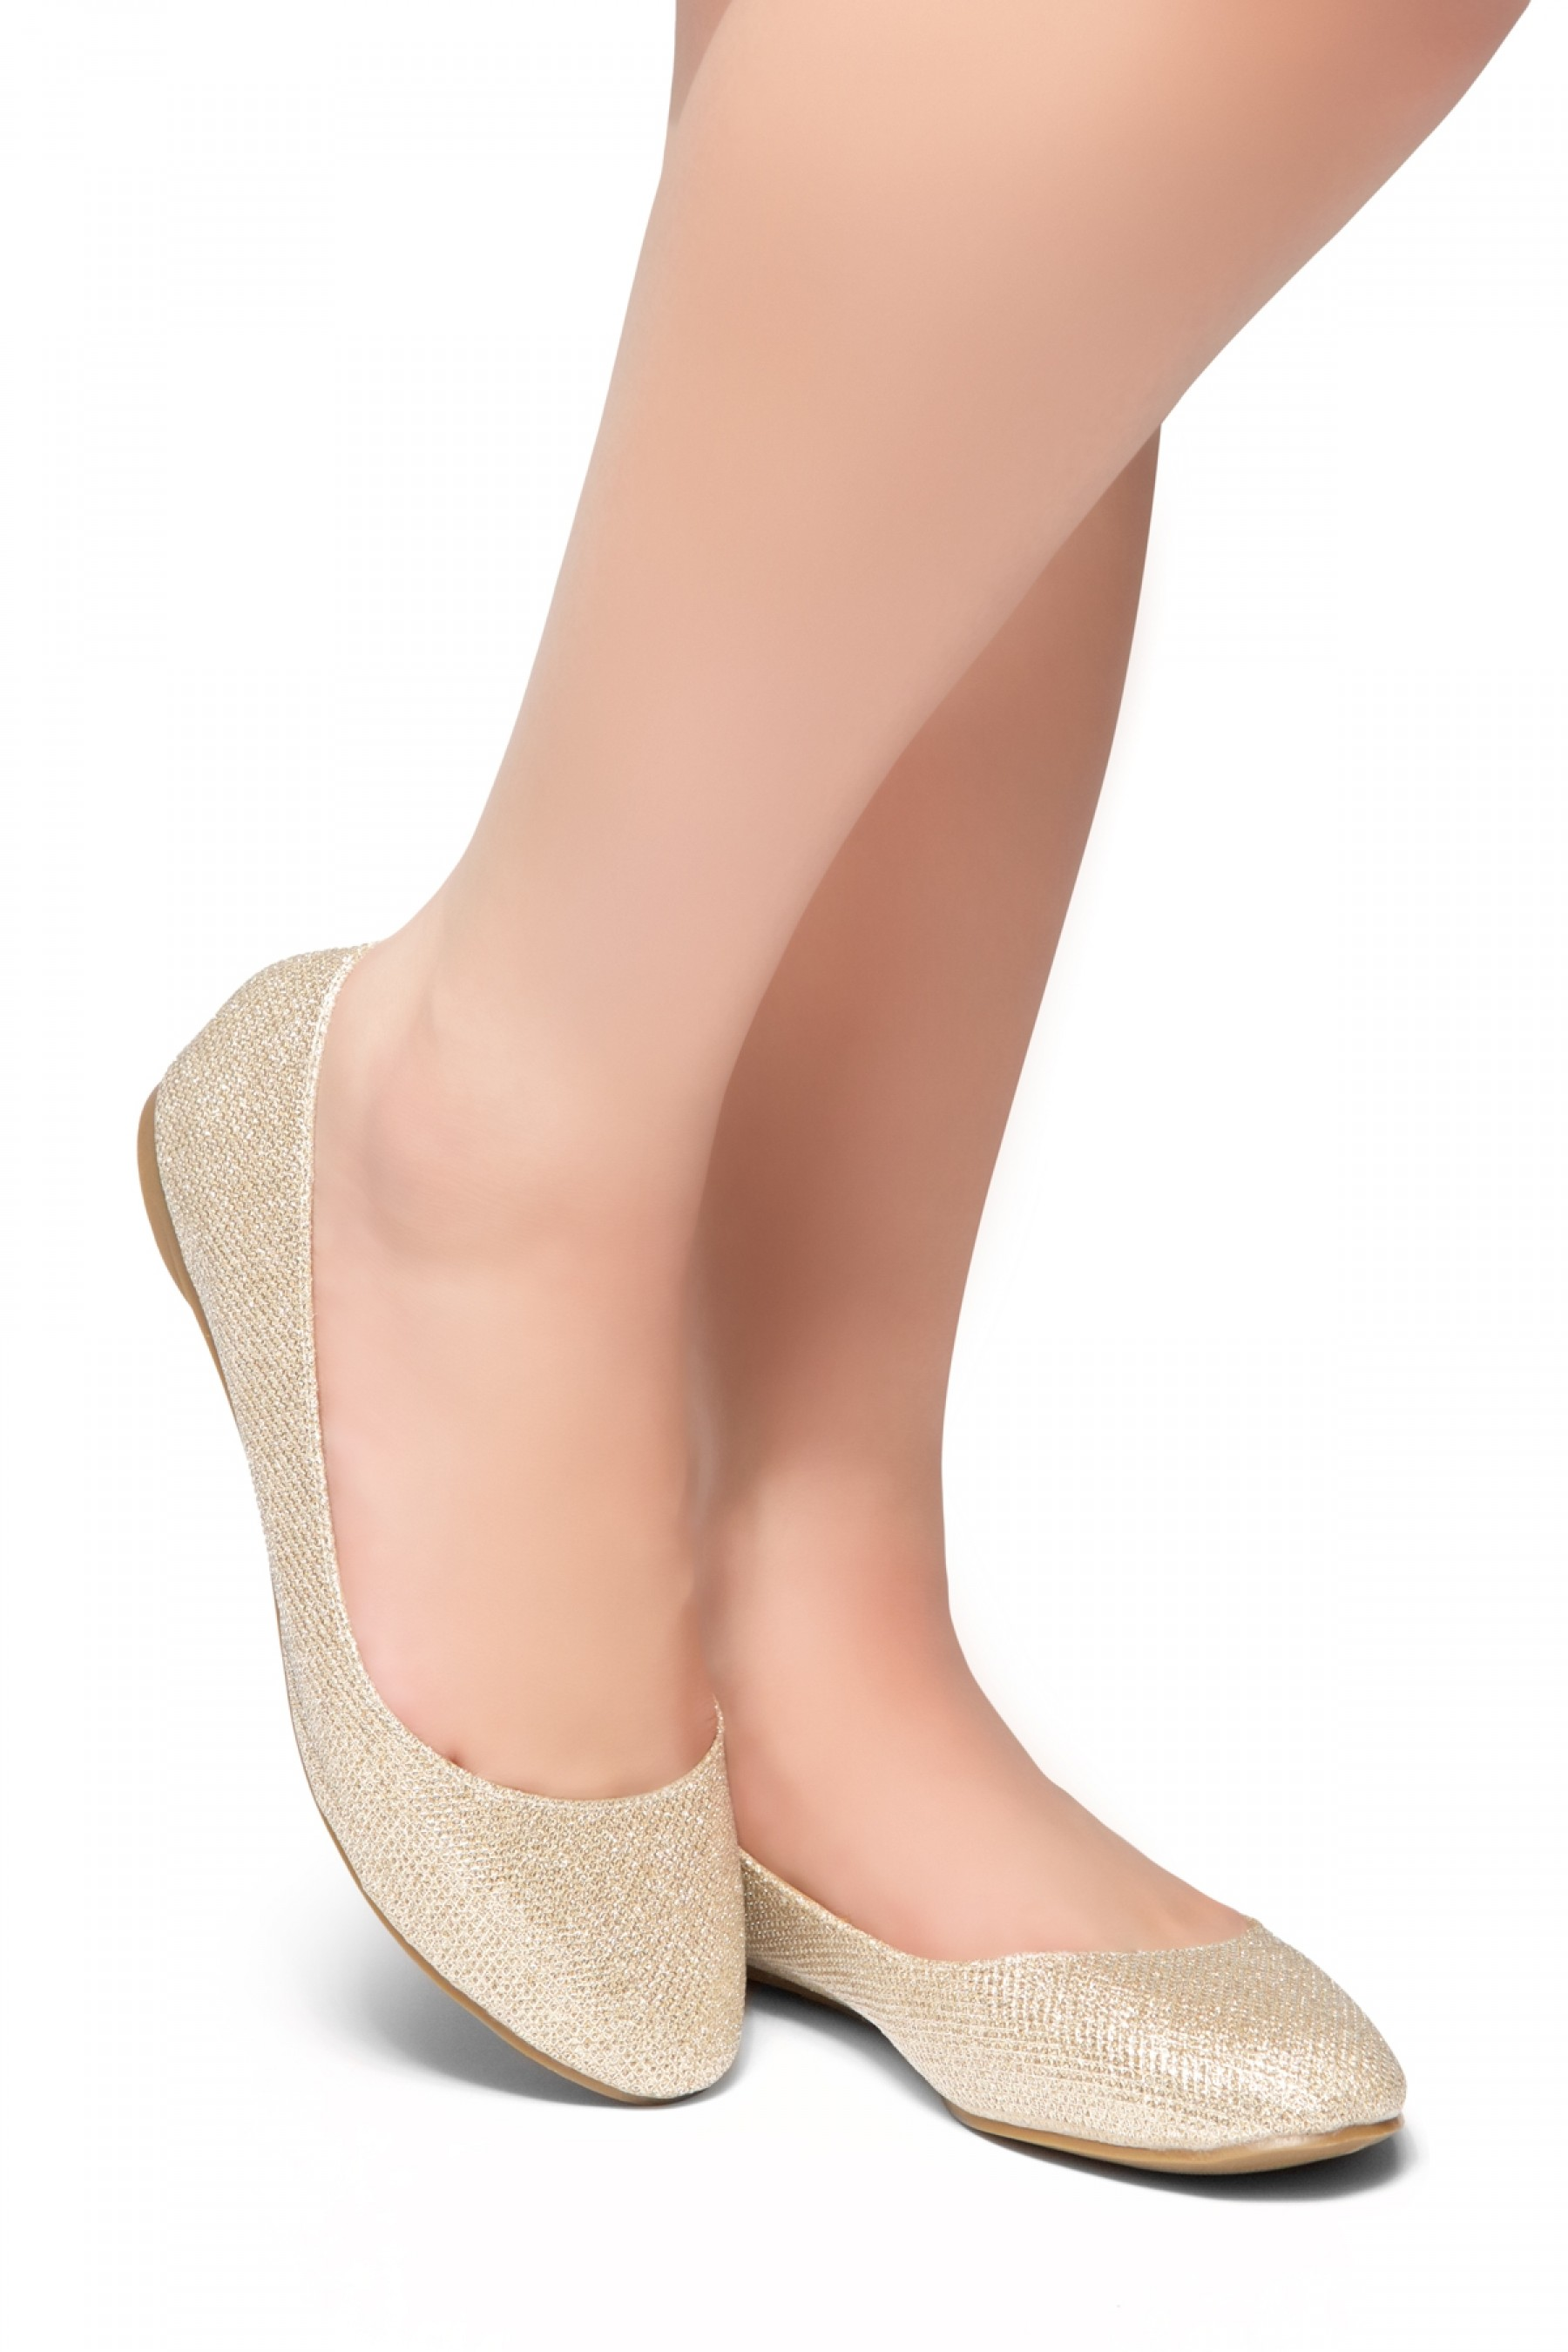 HerStyle New Memory-Round Toe, No detail, Ballet Flat (Champagne)